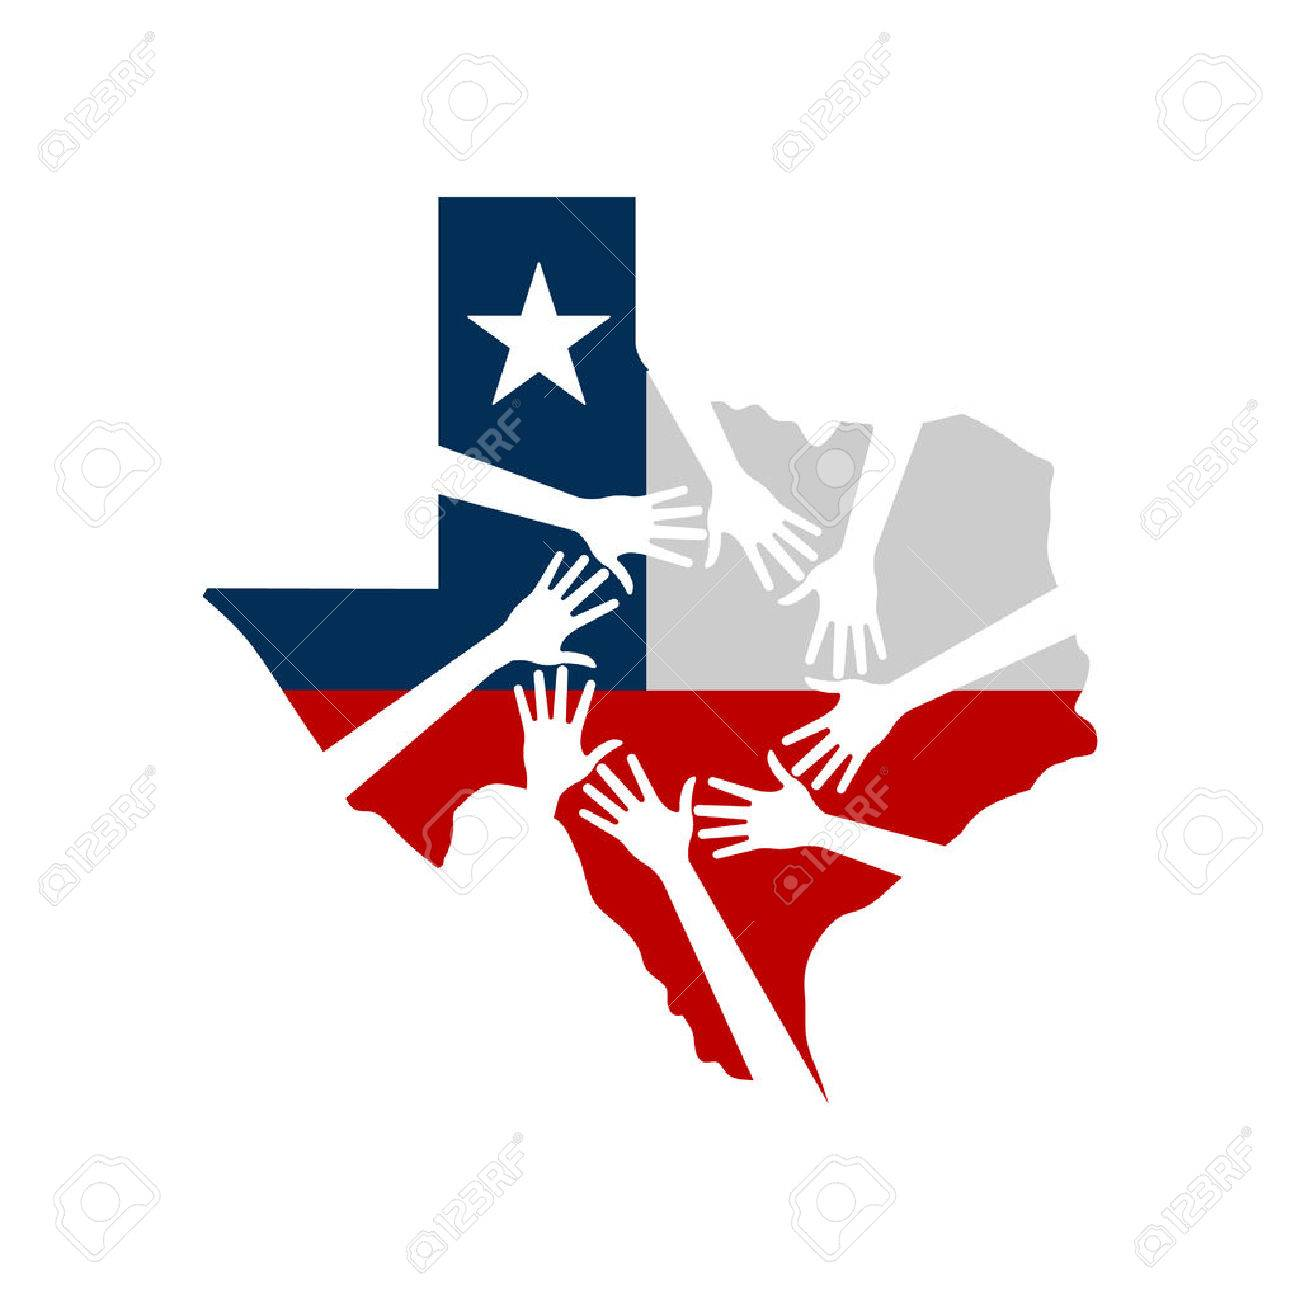 Hands Helping Texas Vector Illustration Archivio Fotografico - 85004796